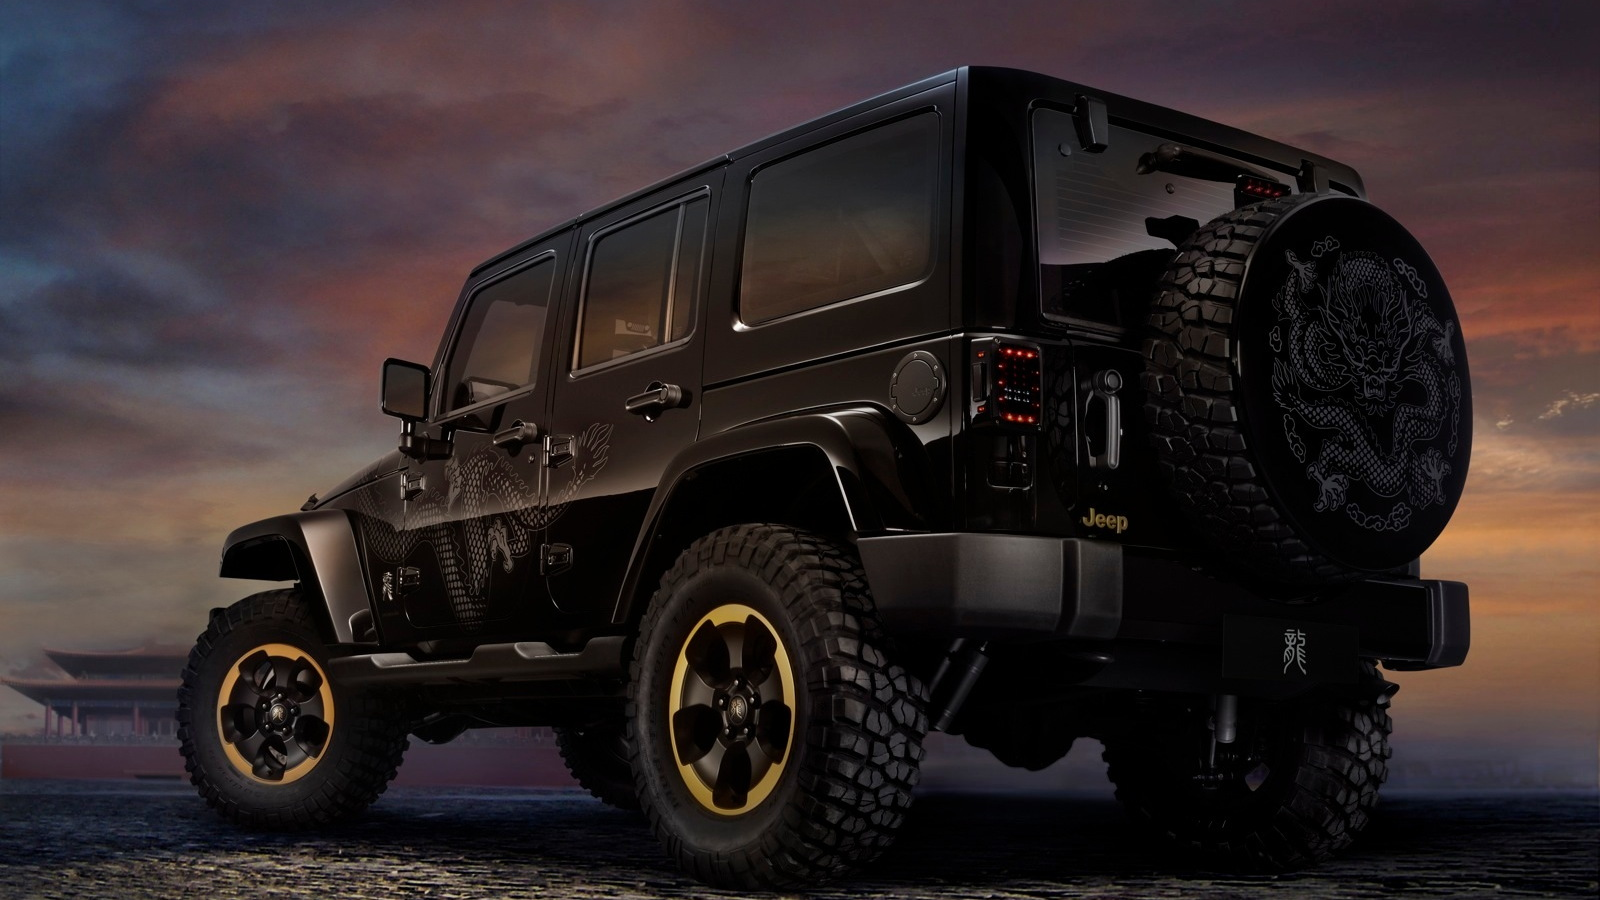 Jeep Wrangler Dragon Design Concept for the 2012 Beijing Auto Show